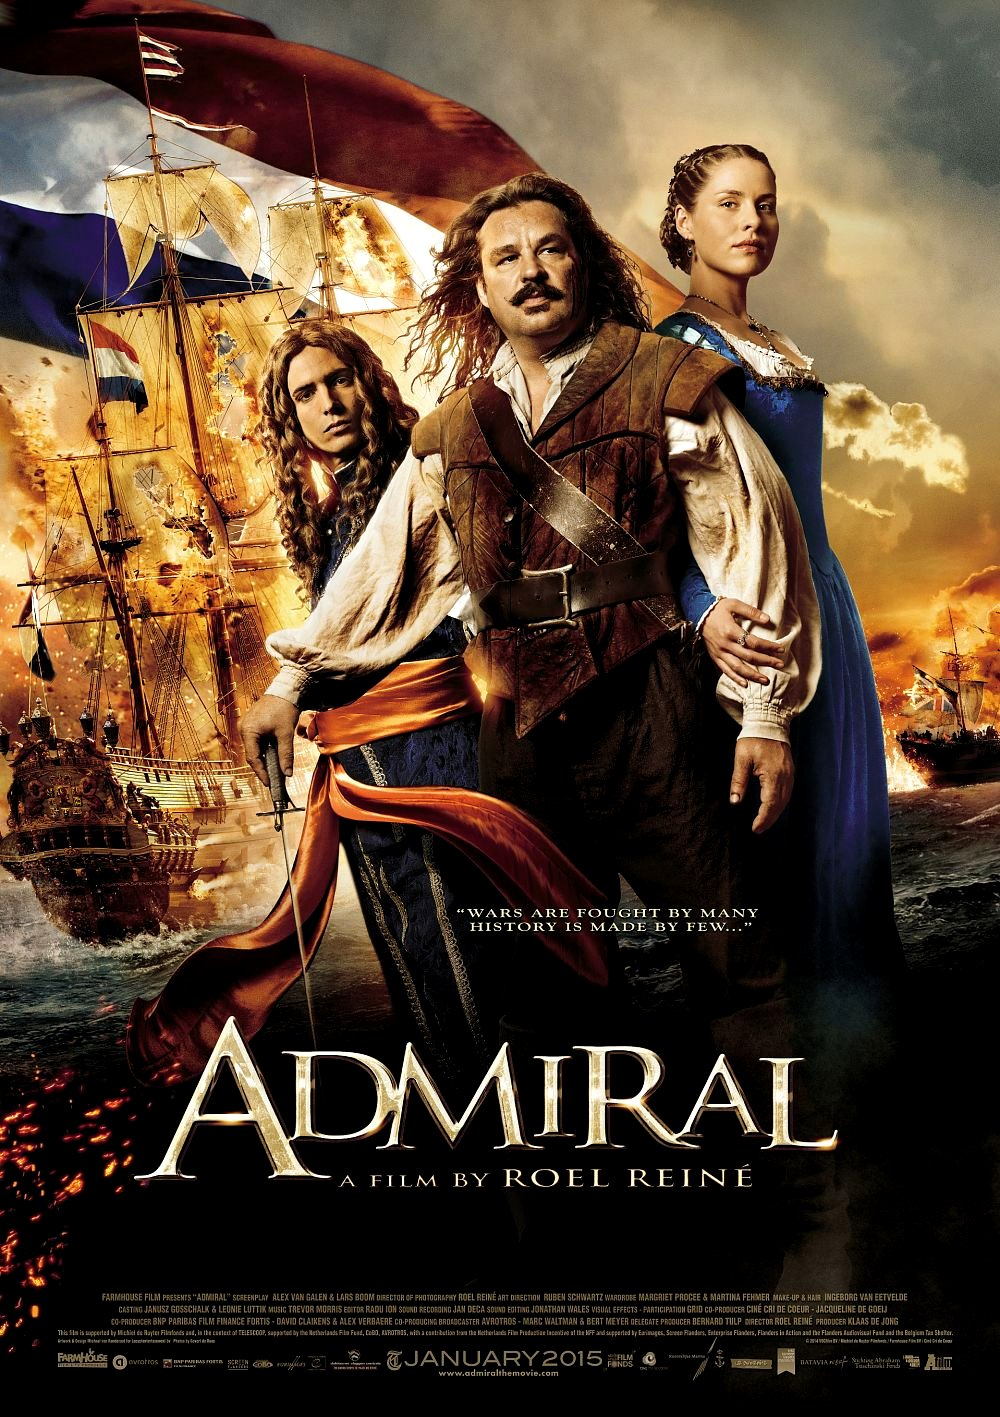 Admiral (2015) Movie Poster Google image from https://arteis.files.wordpress.com/2015/01/ruyter-b.jpg